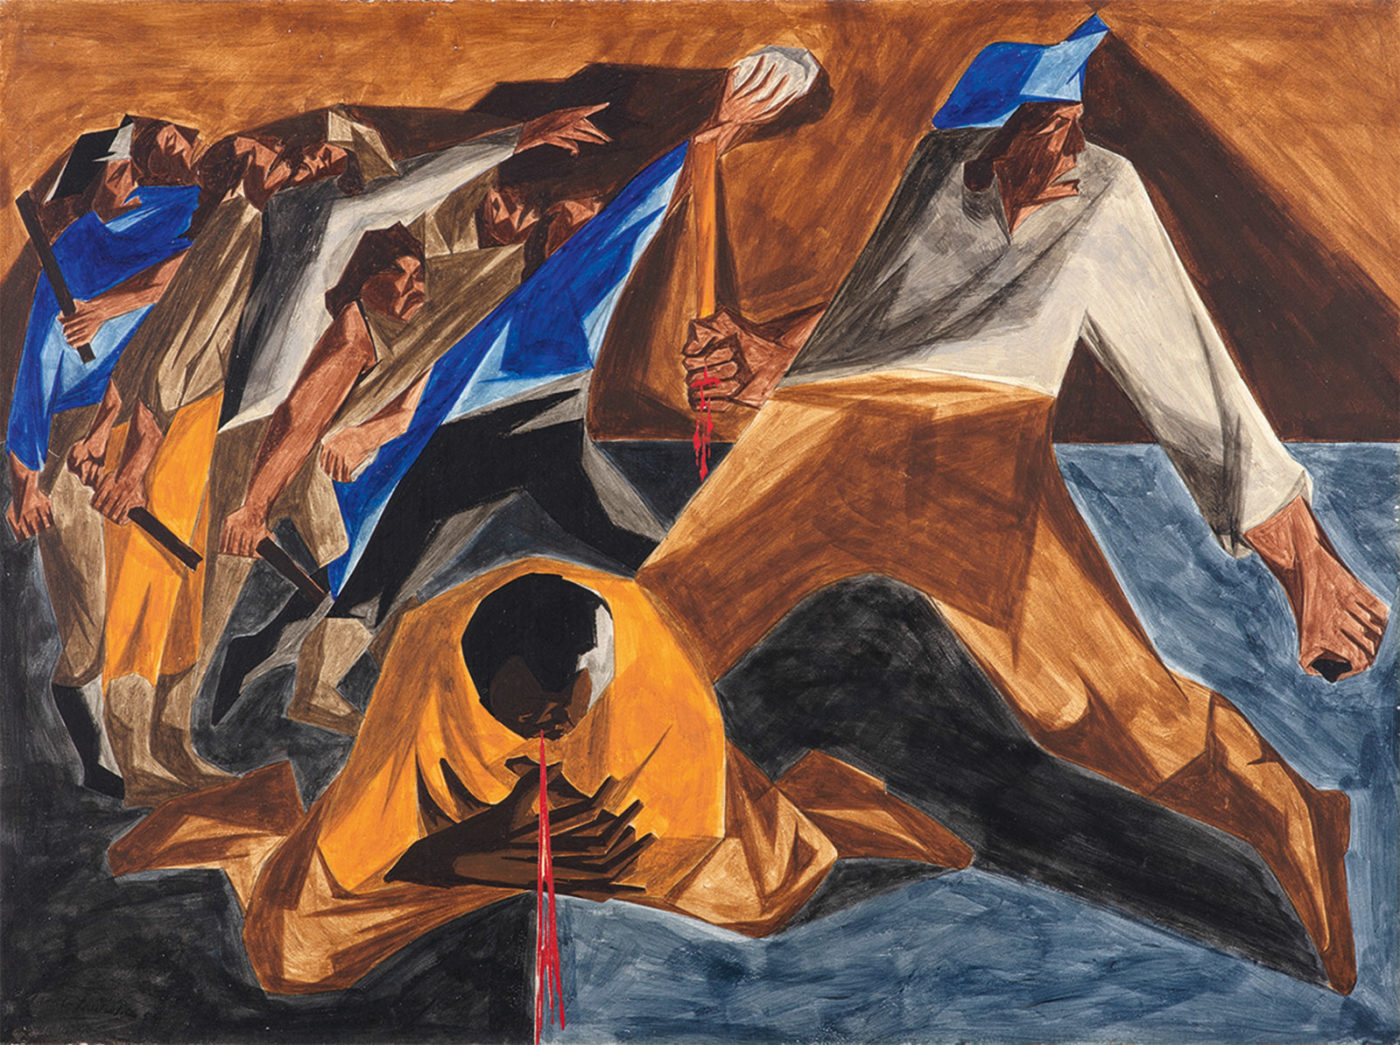 Jacob Lawrence: Massacre in Boston, 12 x 16 inches, 1954–1955; panel 2 from Struggle: From the History of the American People